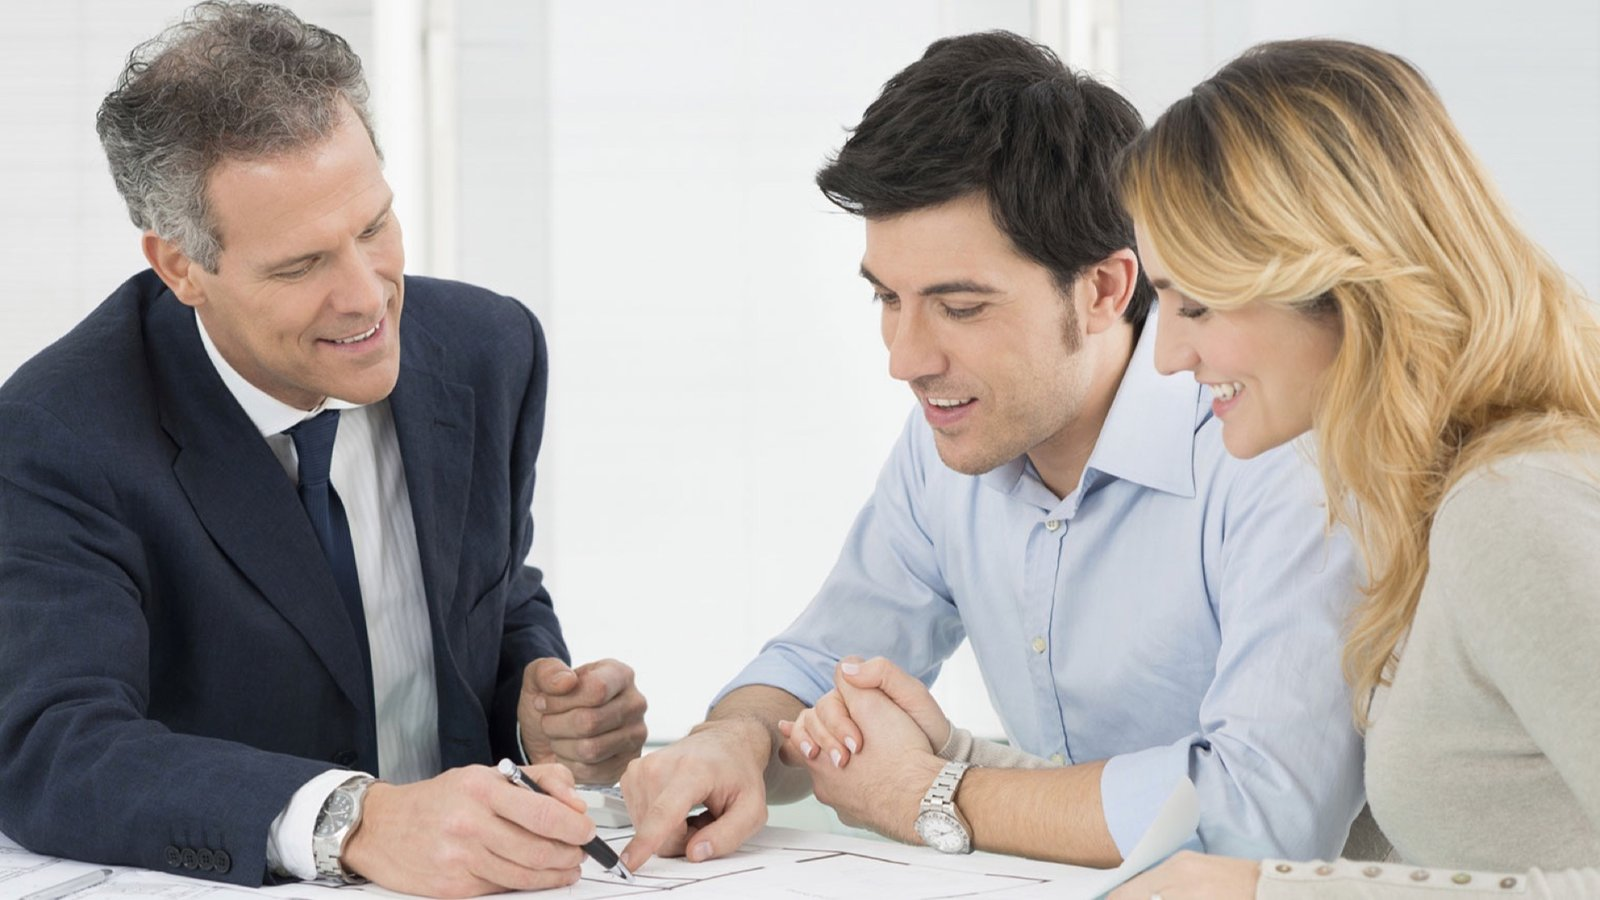 Putting Your Financial Plan Together